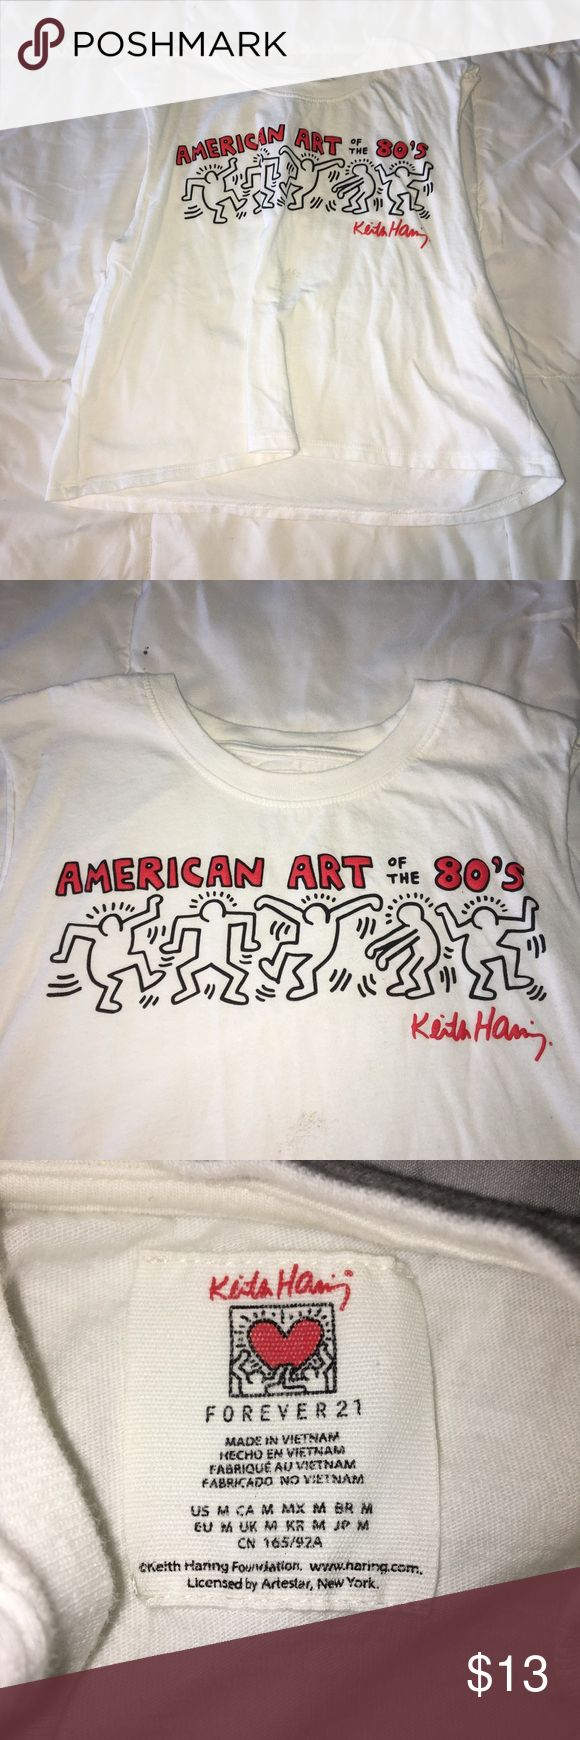 """Keith hating cropped tank Says """"American art of the 80's"""" on the front. Super cute, stylish and comfortable. Size medium, but could easily fit a small as well. Sold out at forever21. Orange bubble letters. (Love, style, Tumblr, hipster, boho, bohemian, grunge, 90's, 80's, 70'S, 60's, 50's, minimalist) Forever 21 Tops Crop Tops"""